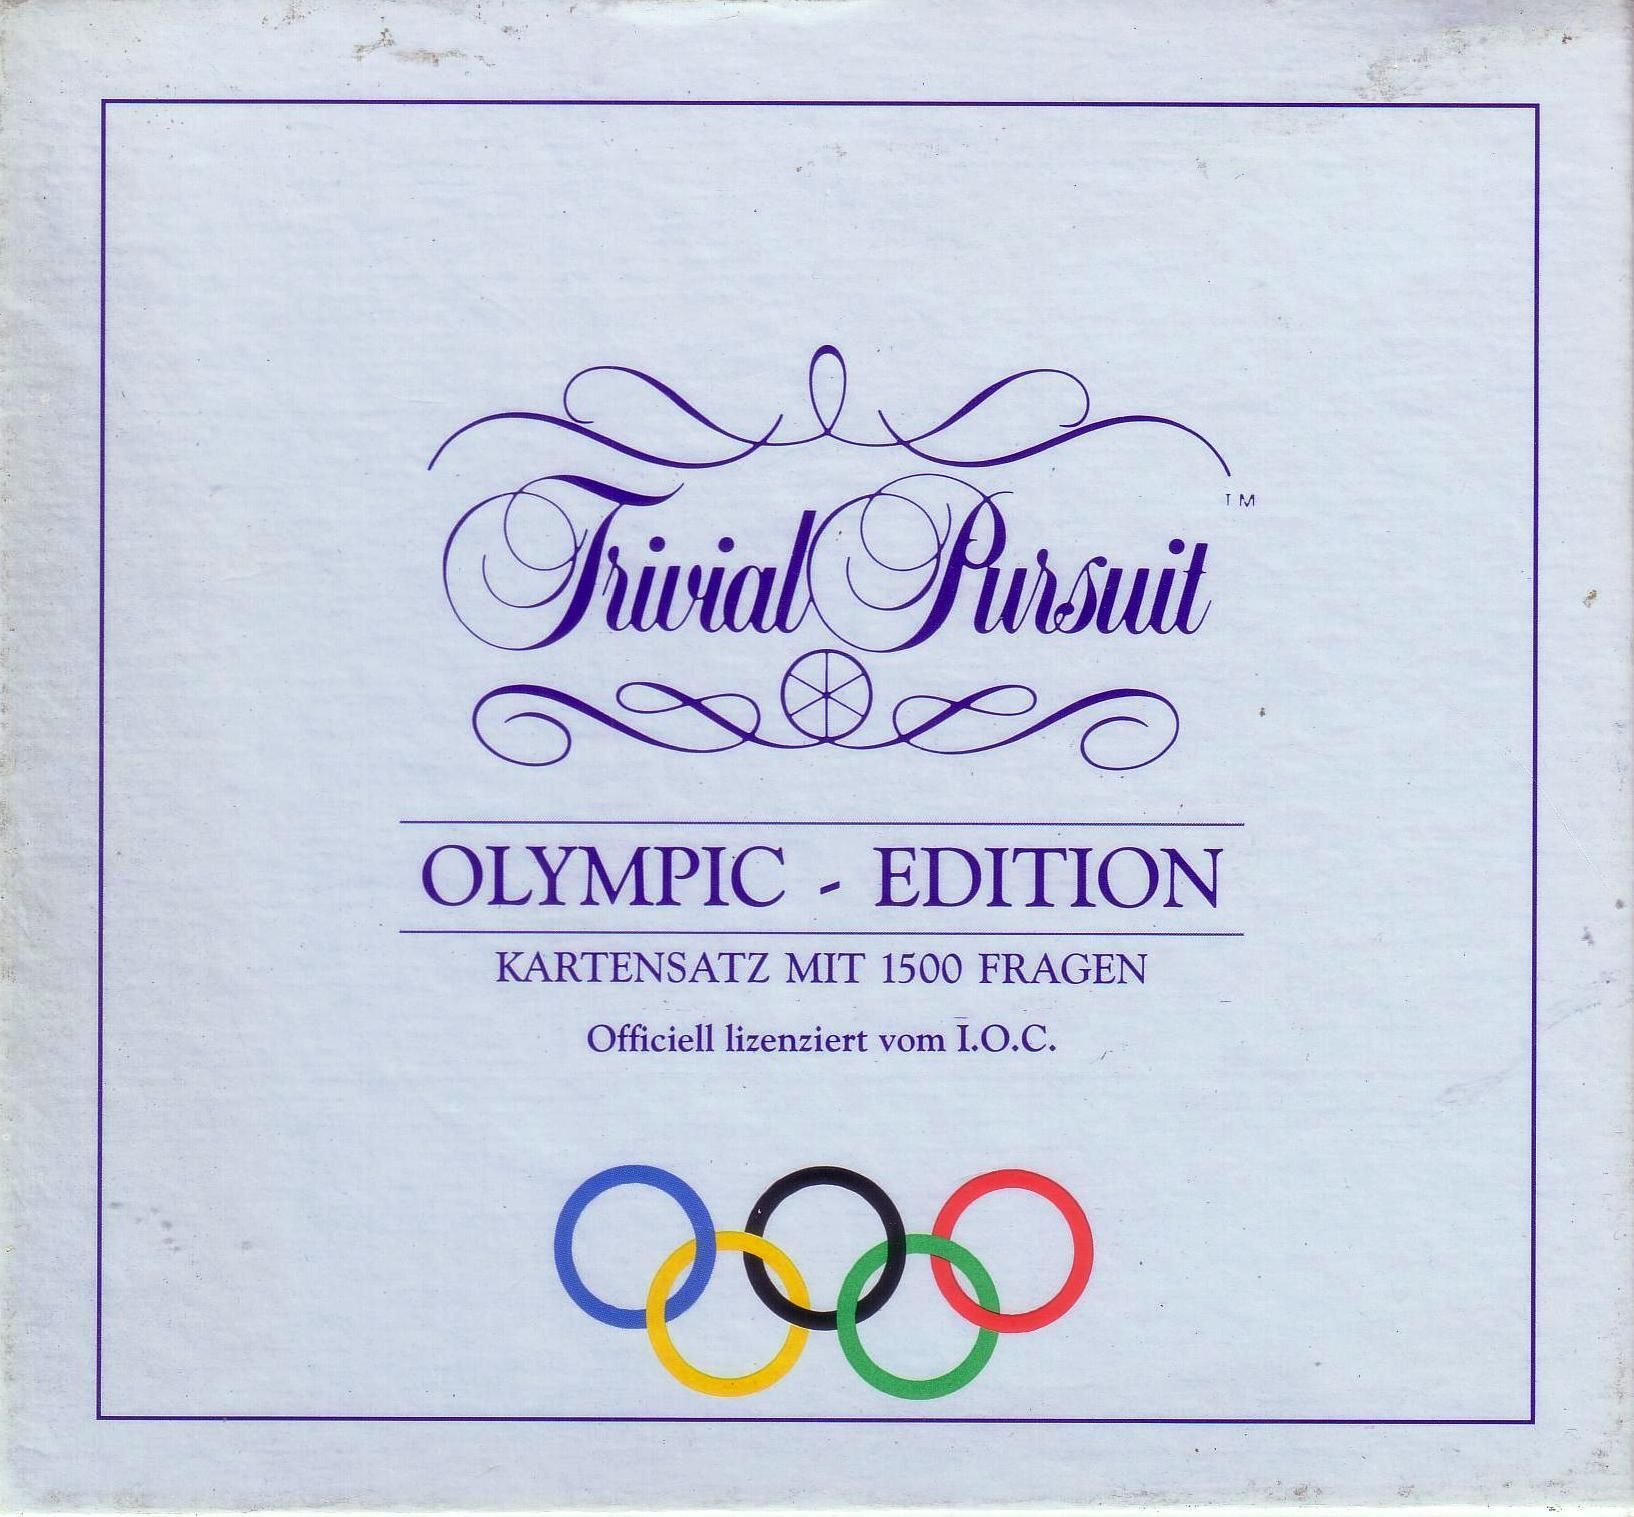 Trivial Pursuit: Olympic Edition